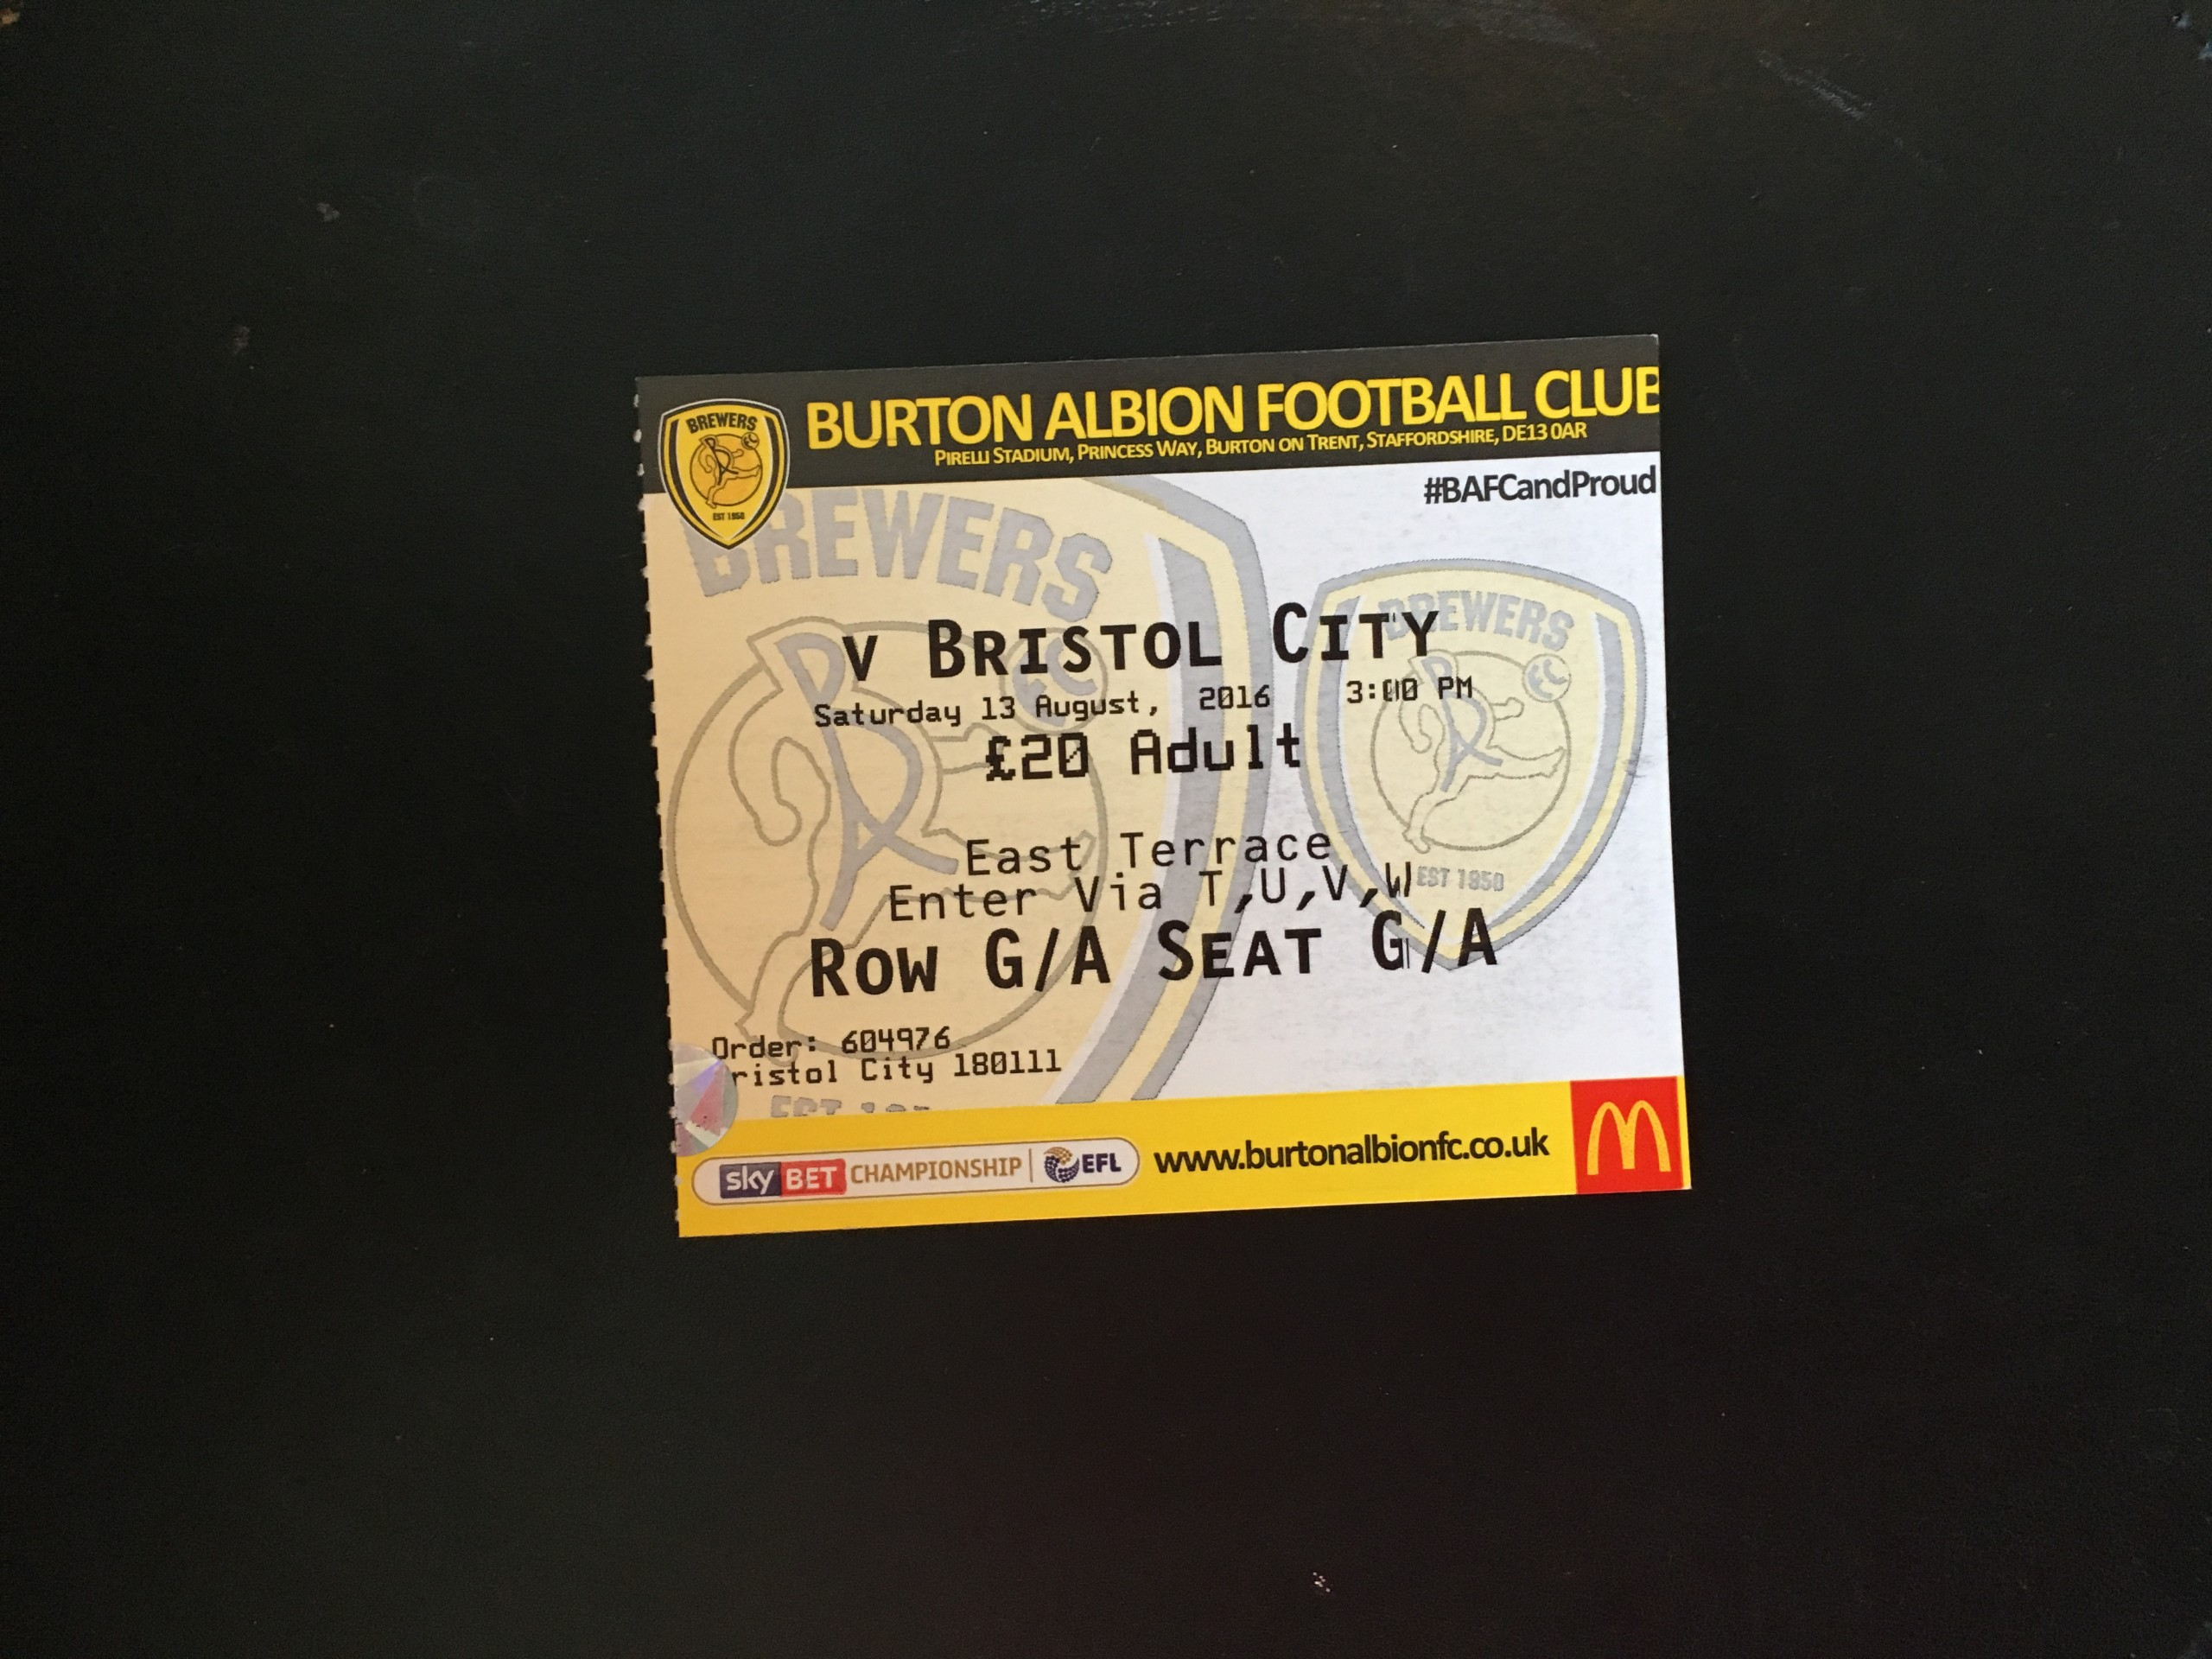 Burton Albion v Bristol City 13-08-2016 Ticket